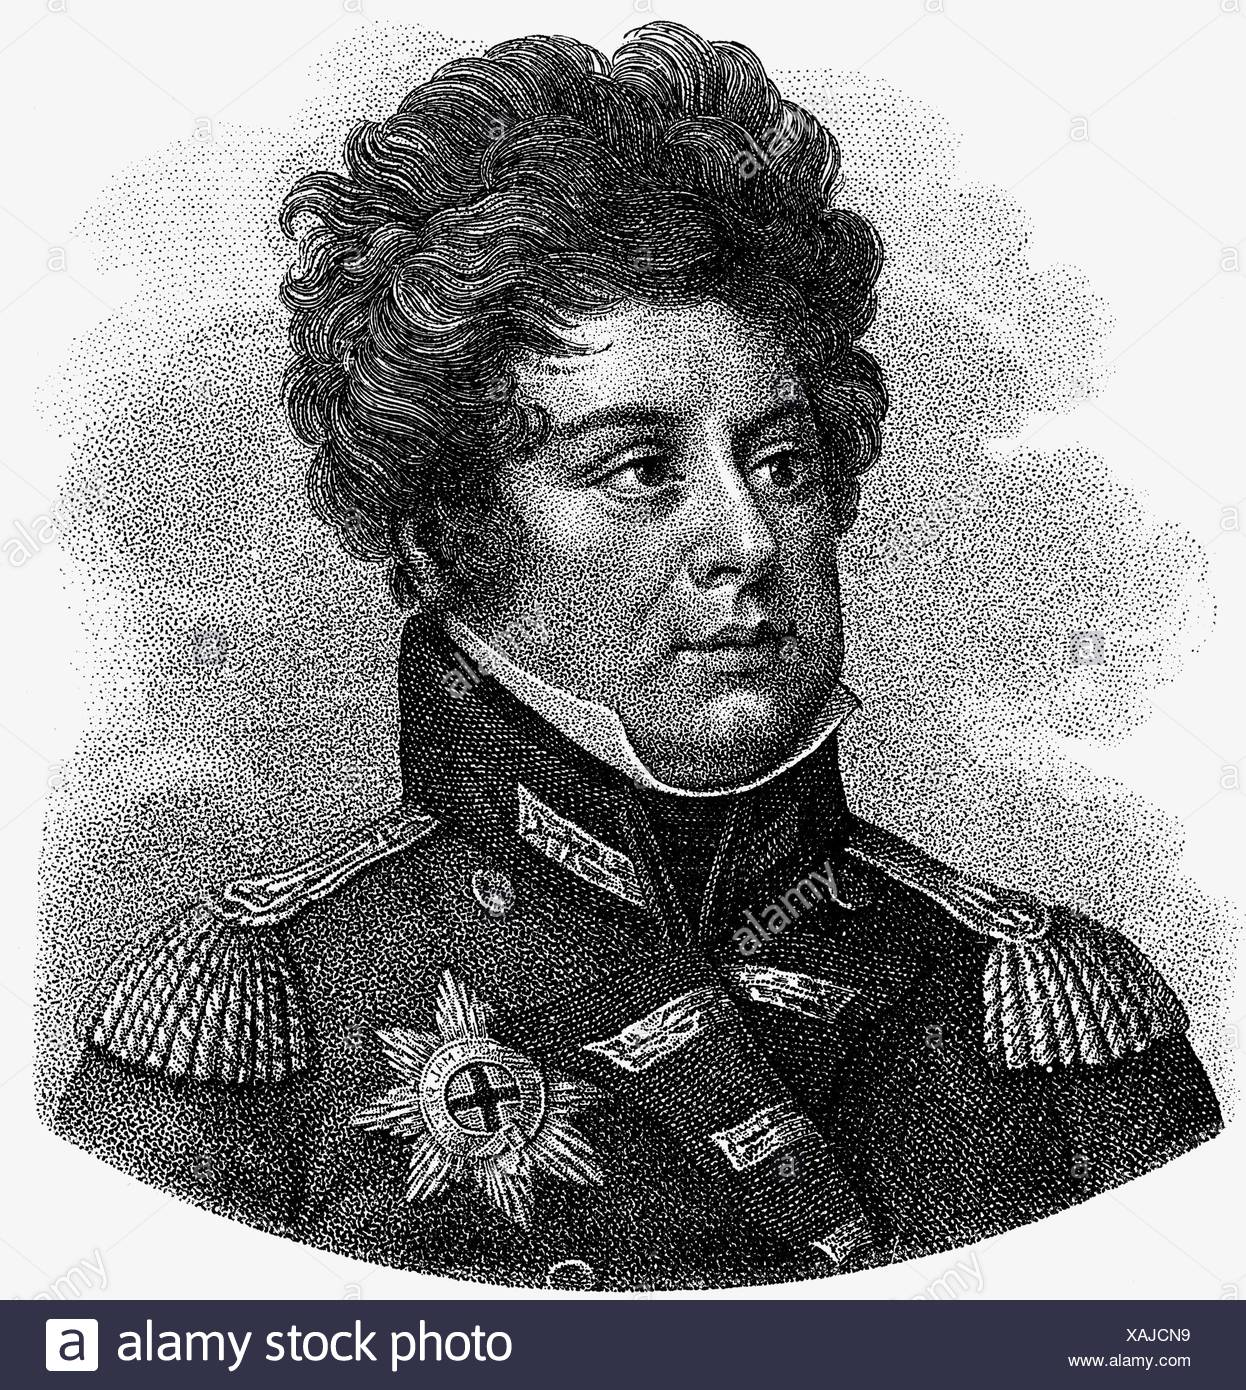 George IV, 12.8.1762 - 26.6.1830, King of Great Britain 29.1.1820 - 26.6.1830, portrait, wood engraving, 19th century, , Additional-Rights-Clearances-NA - Stock Image